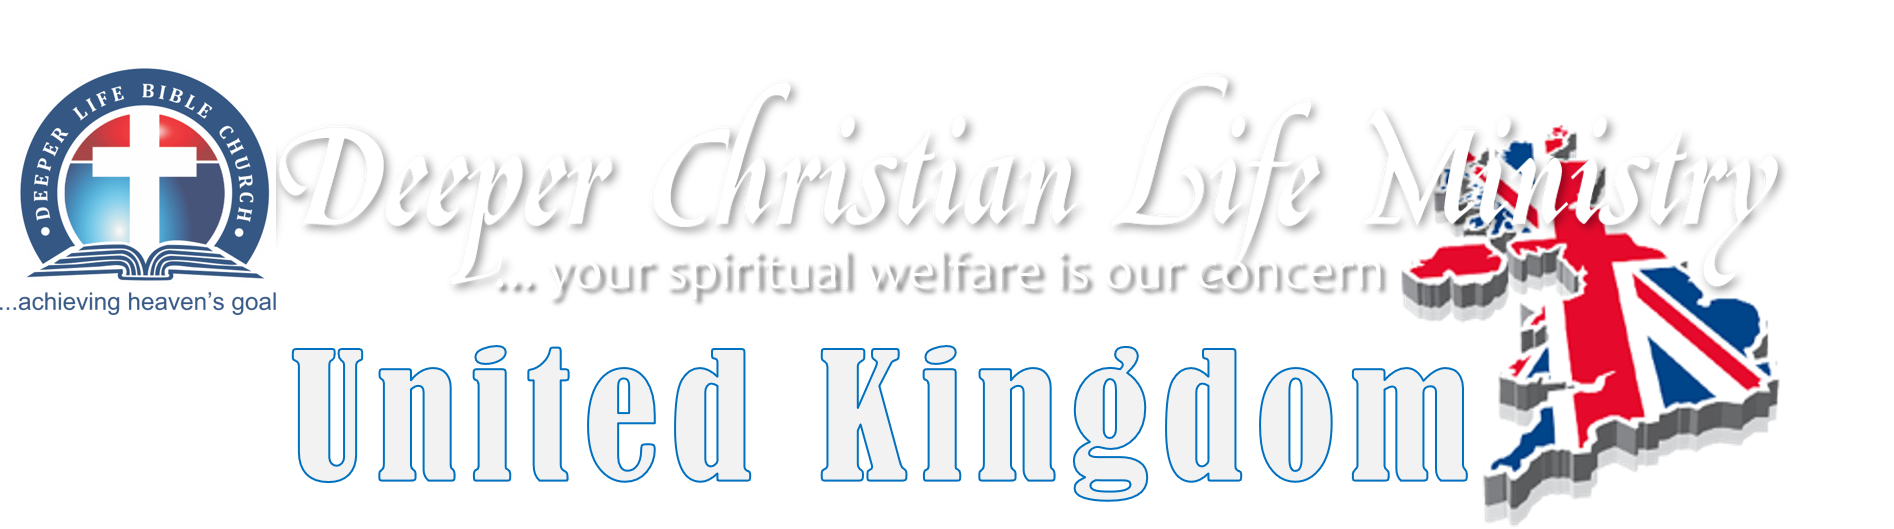 Deeper Christian Life Ministry, United Kingdom